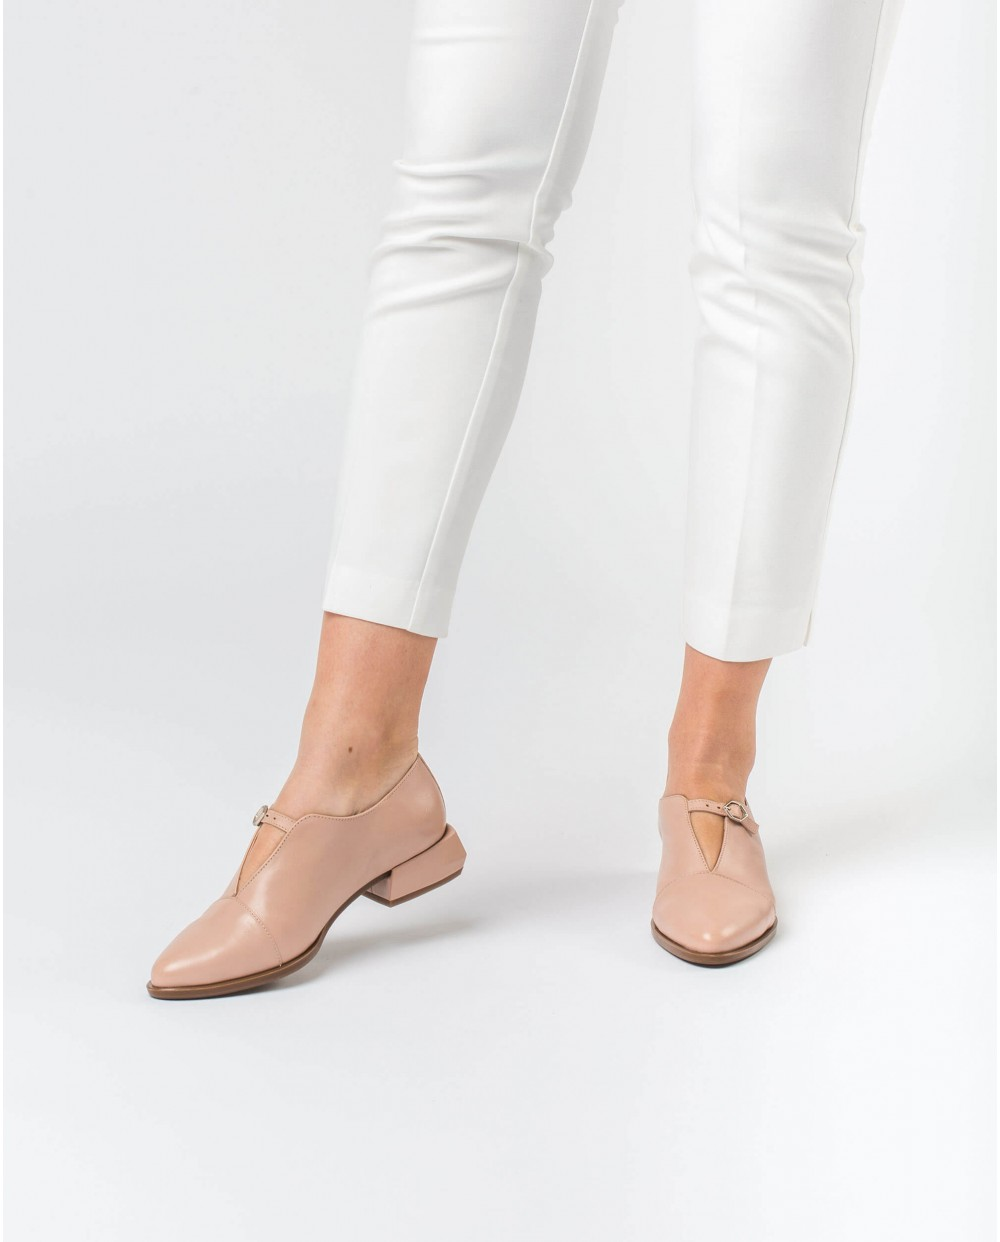 Wonders-Flat Shoes-Leather shoe with buckle